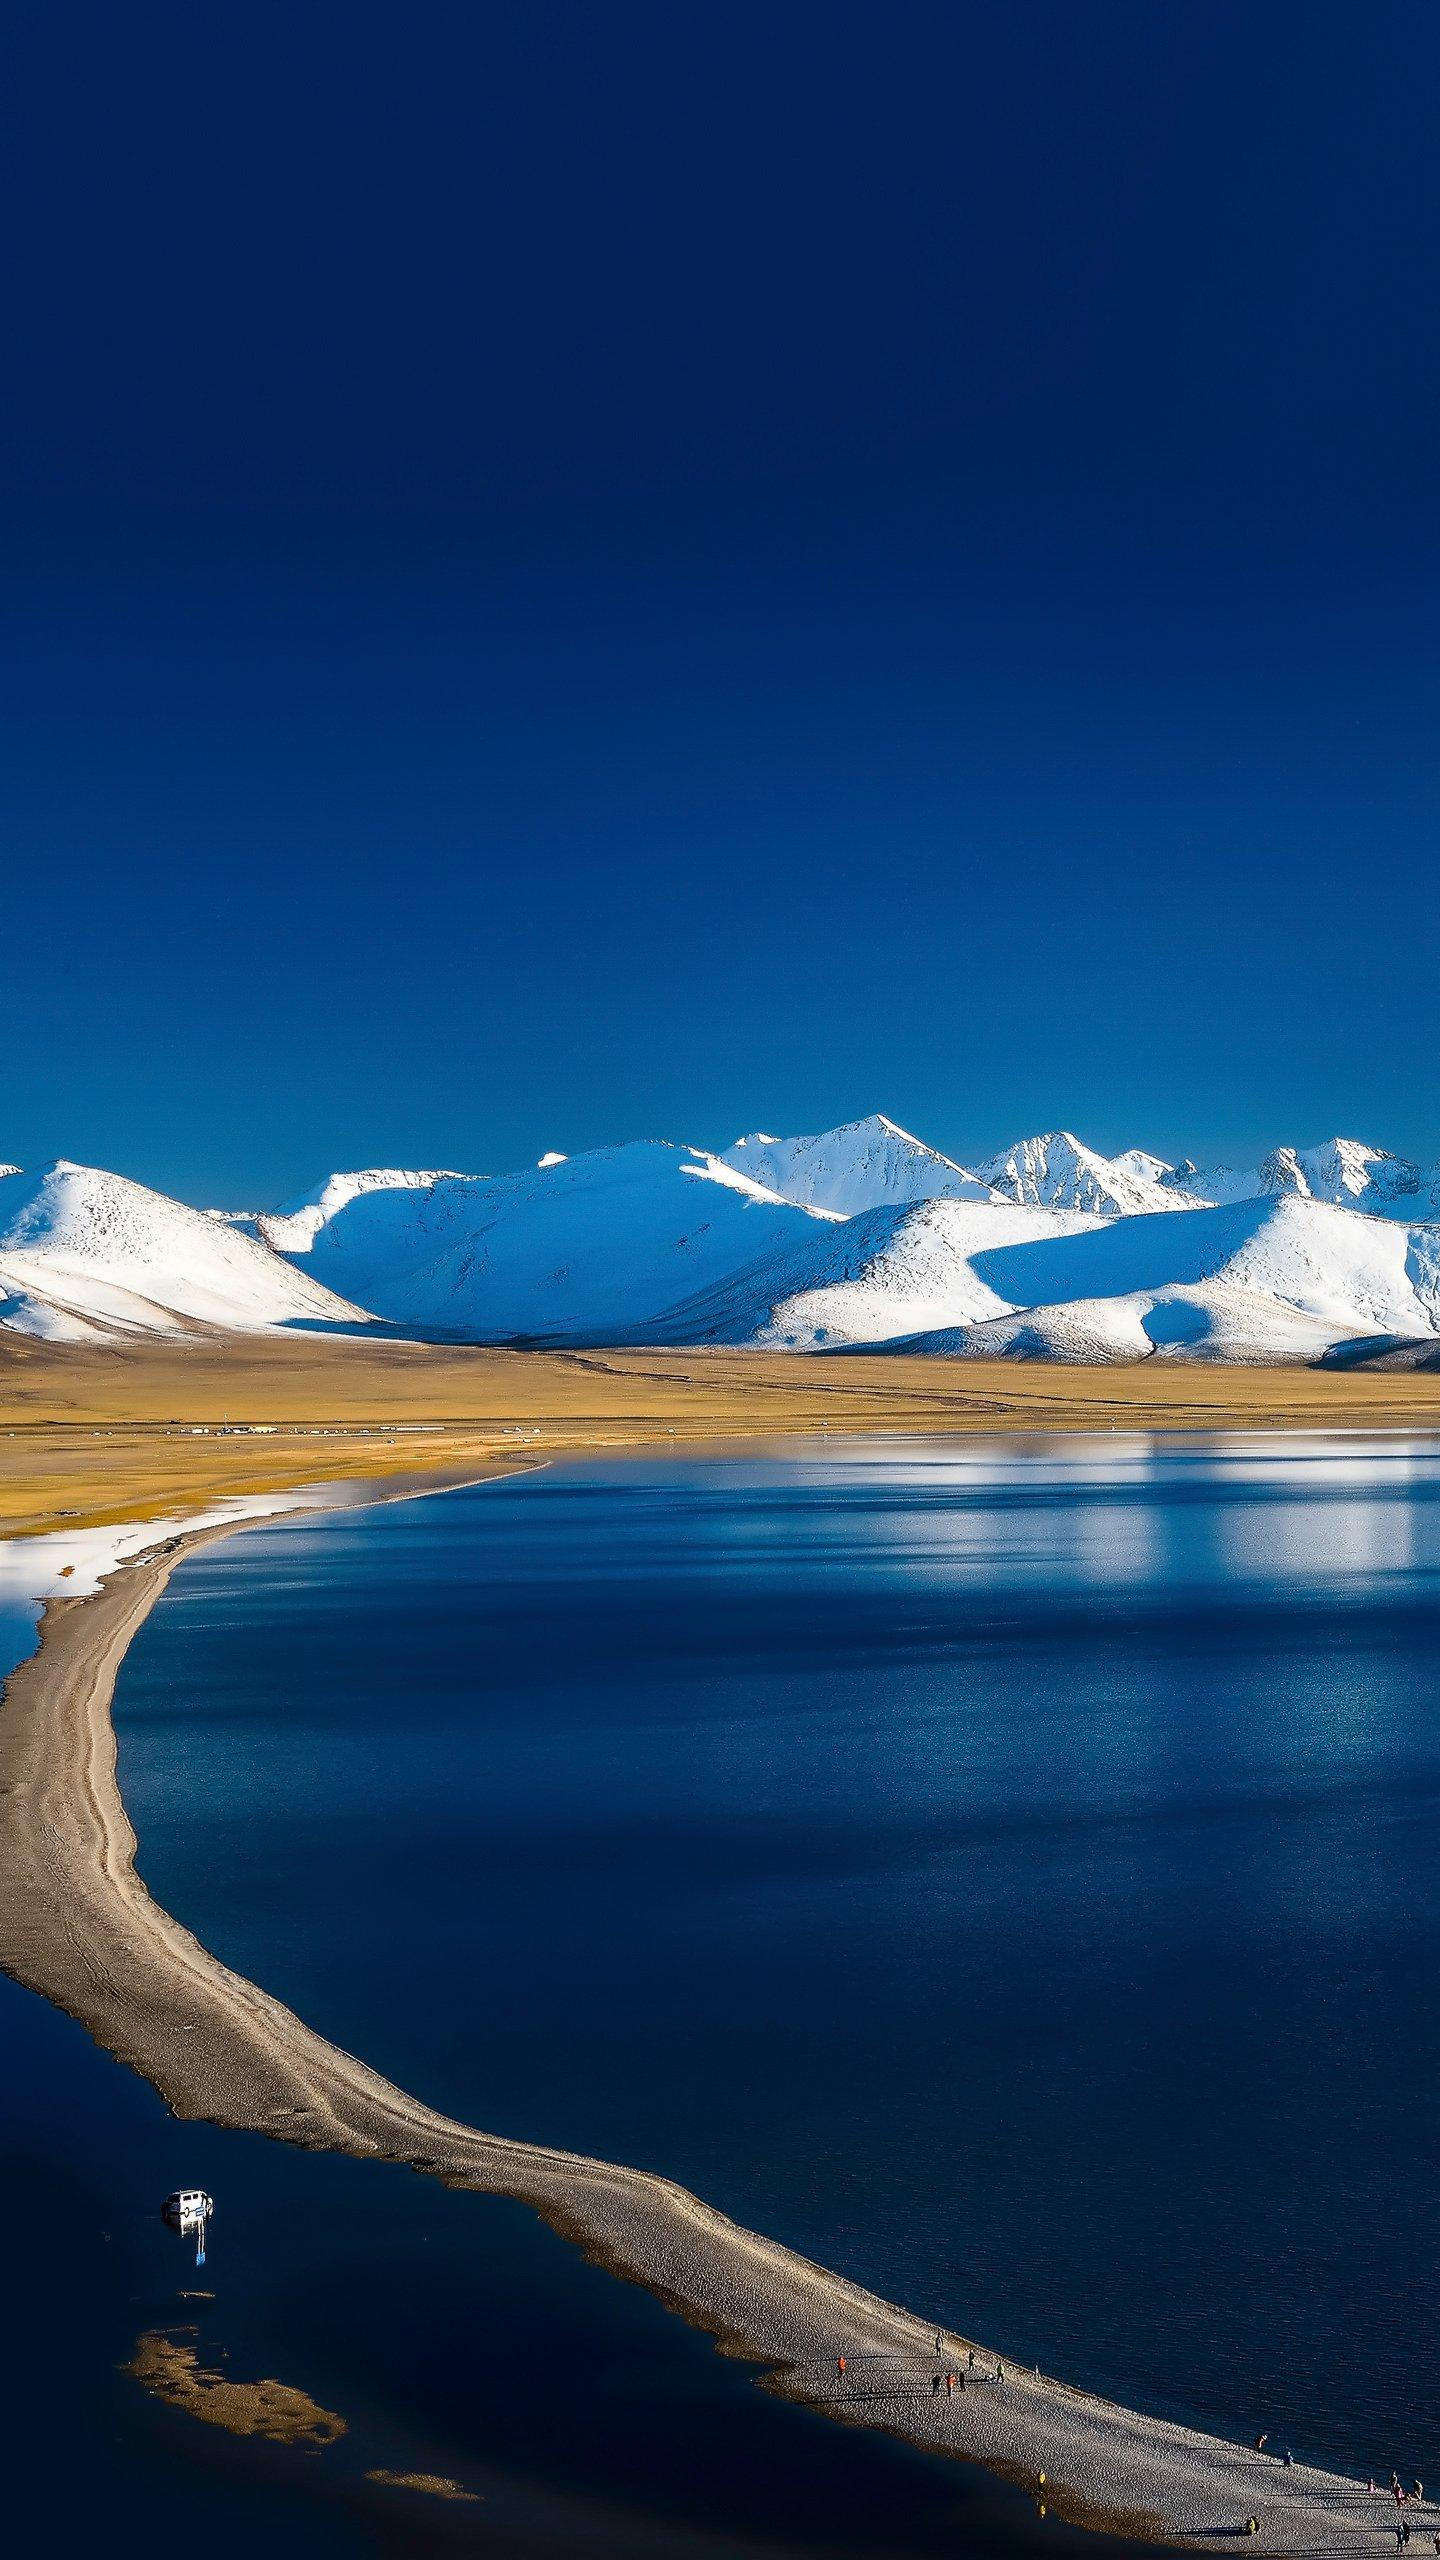 Tibet - Namco. The largest lake in the world, like a huge treasure mirror, is set in the grasslands of northern Tibet.